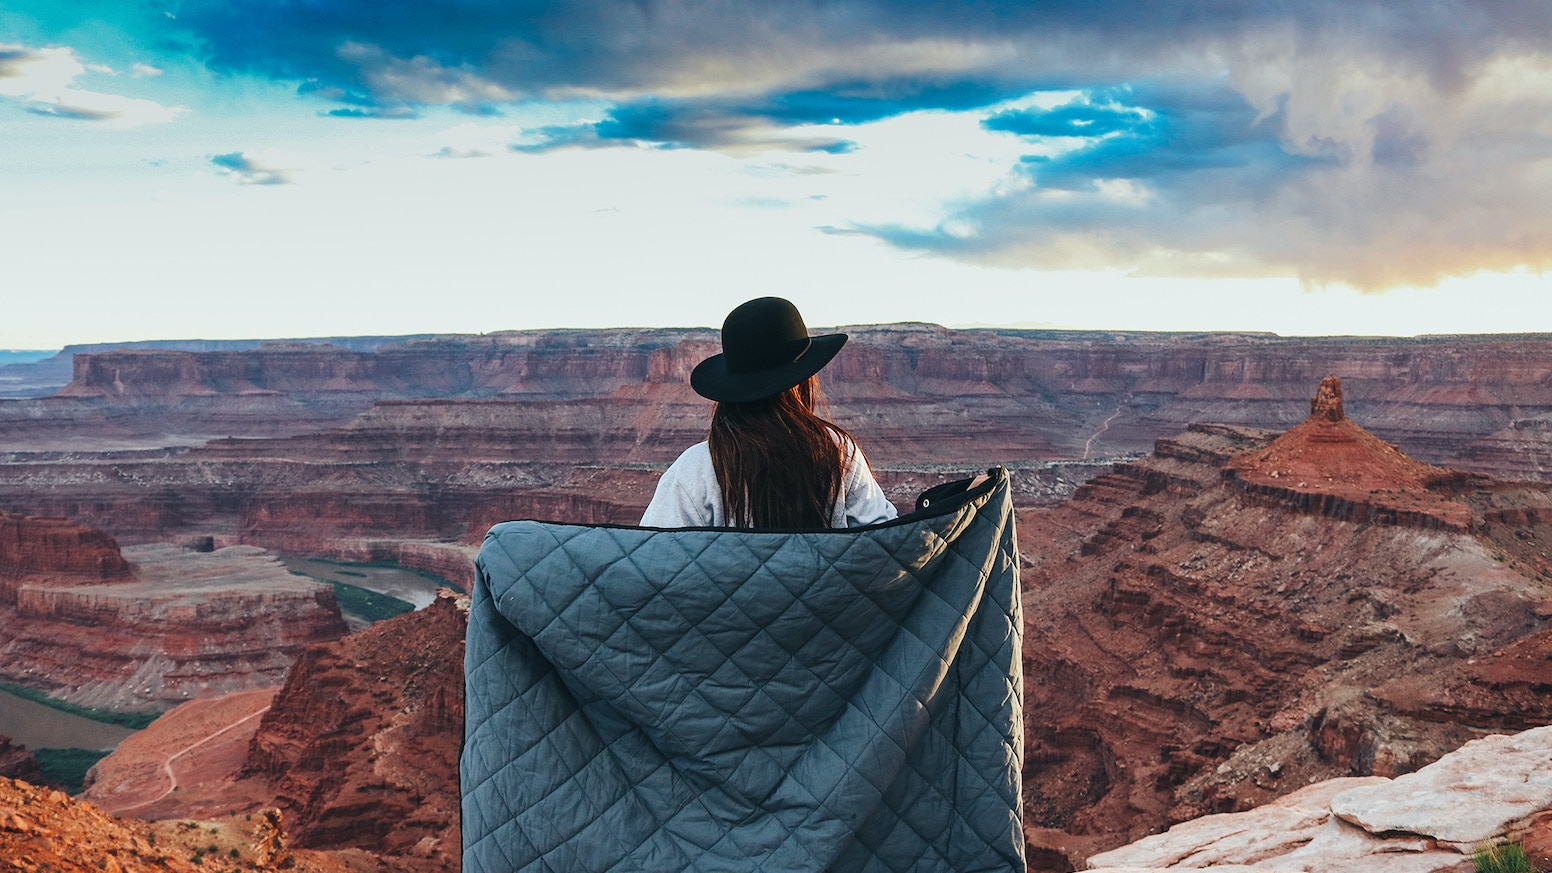 A durable blanket for everyday use. Made to last a lifetime. Not Your Grandma's quilt. Comfortable on top, heavy duty on the bottom.